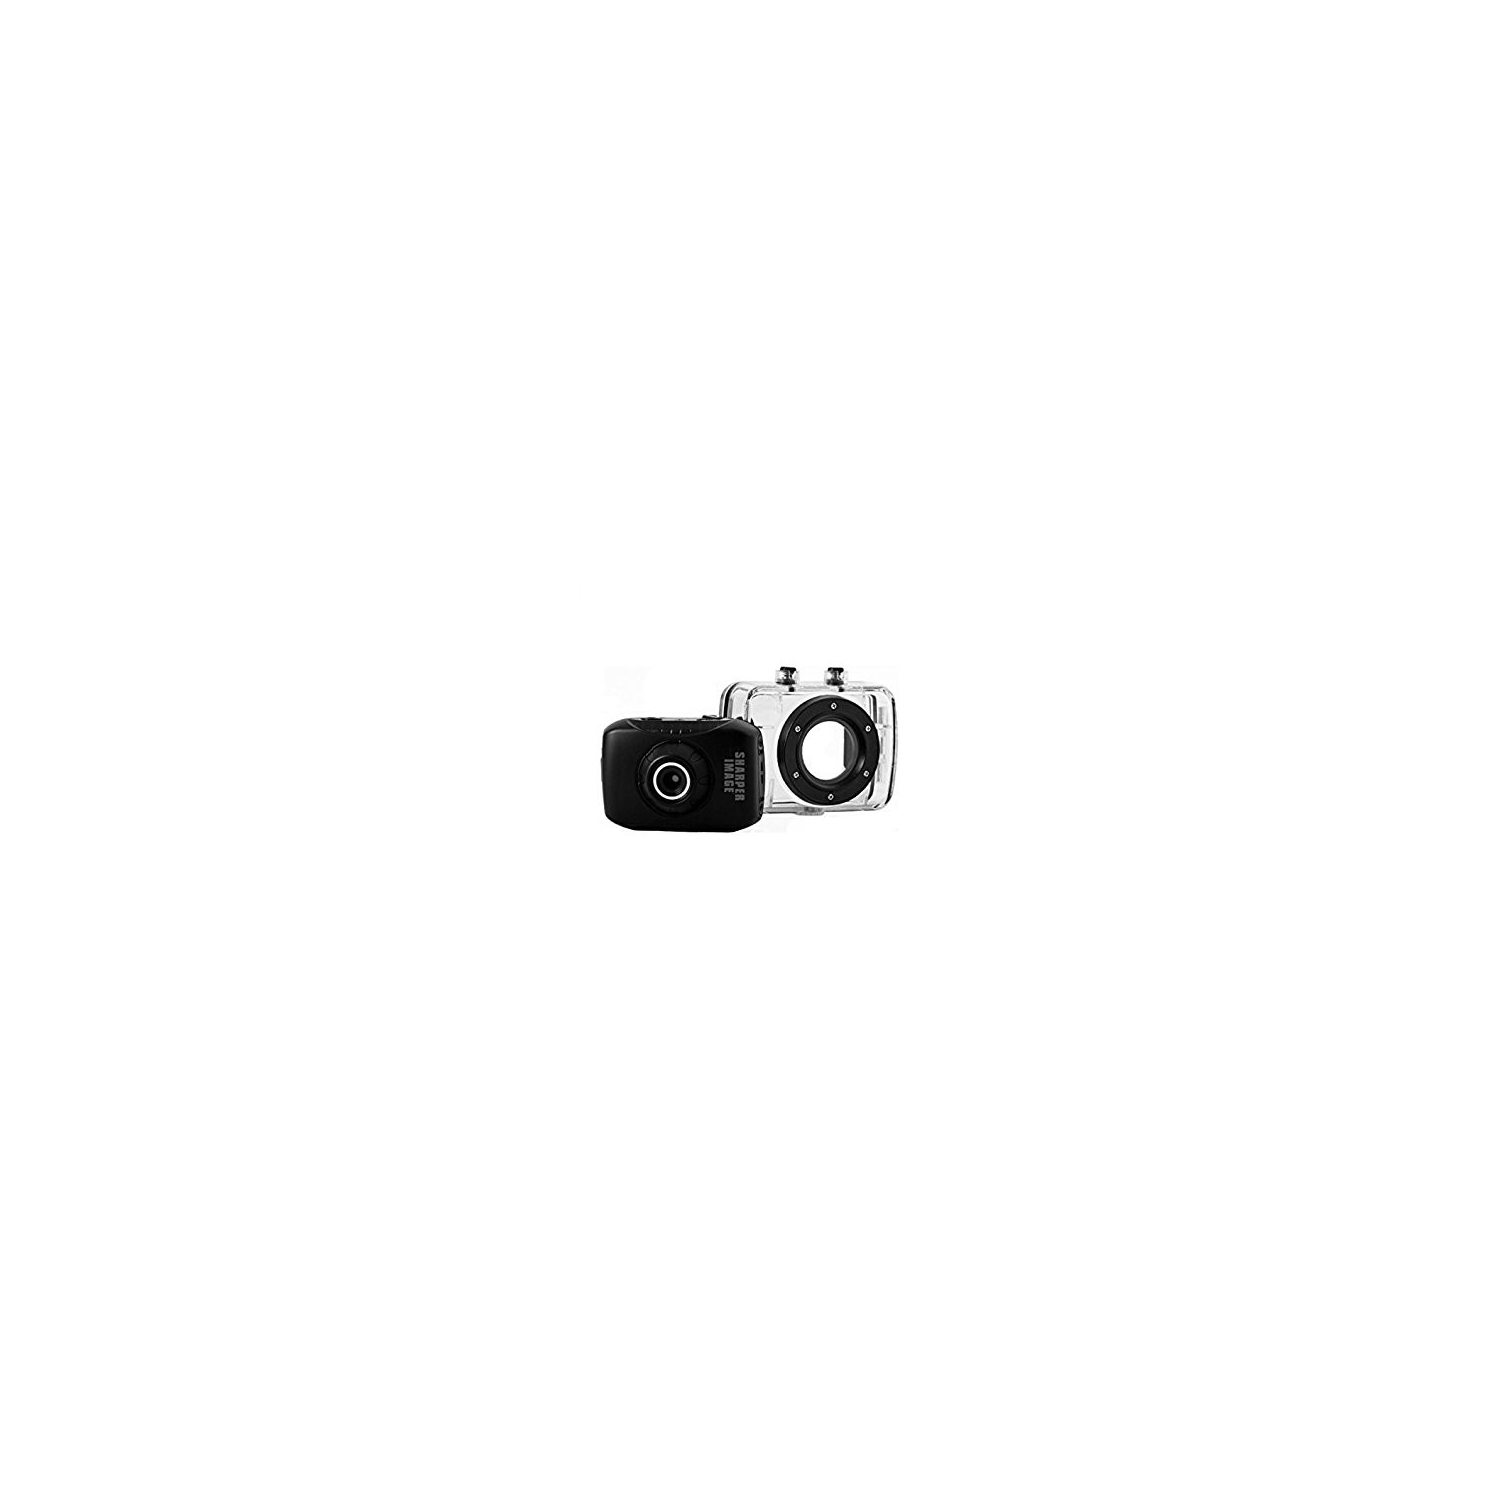 Sharper Image Svc355 33 Ft 5 Mp Hd Action Camera With 720 Pixel